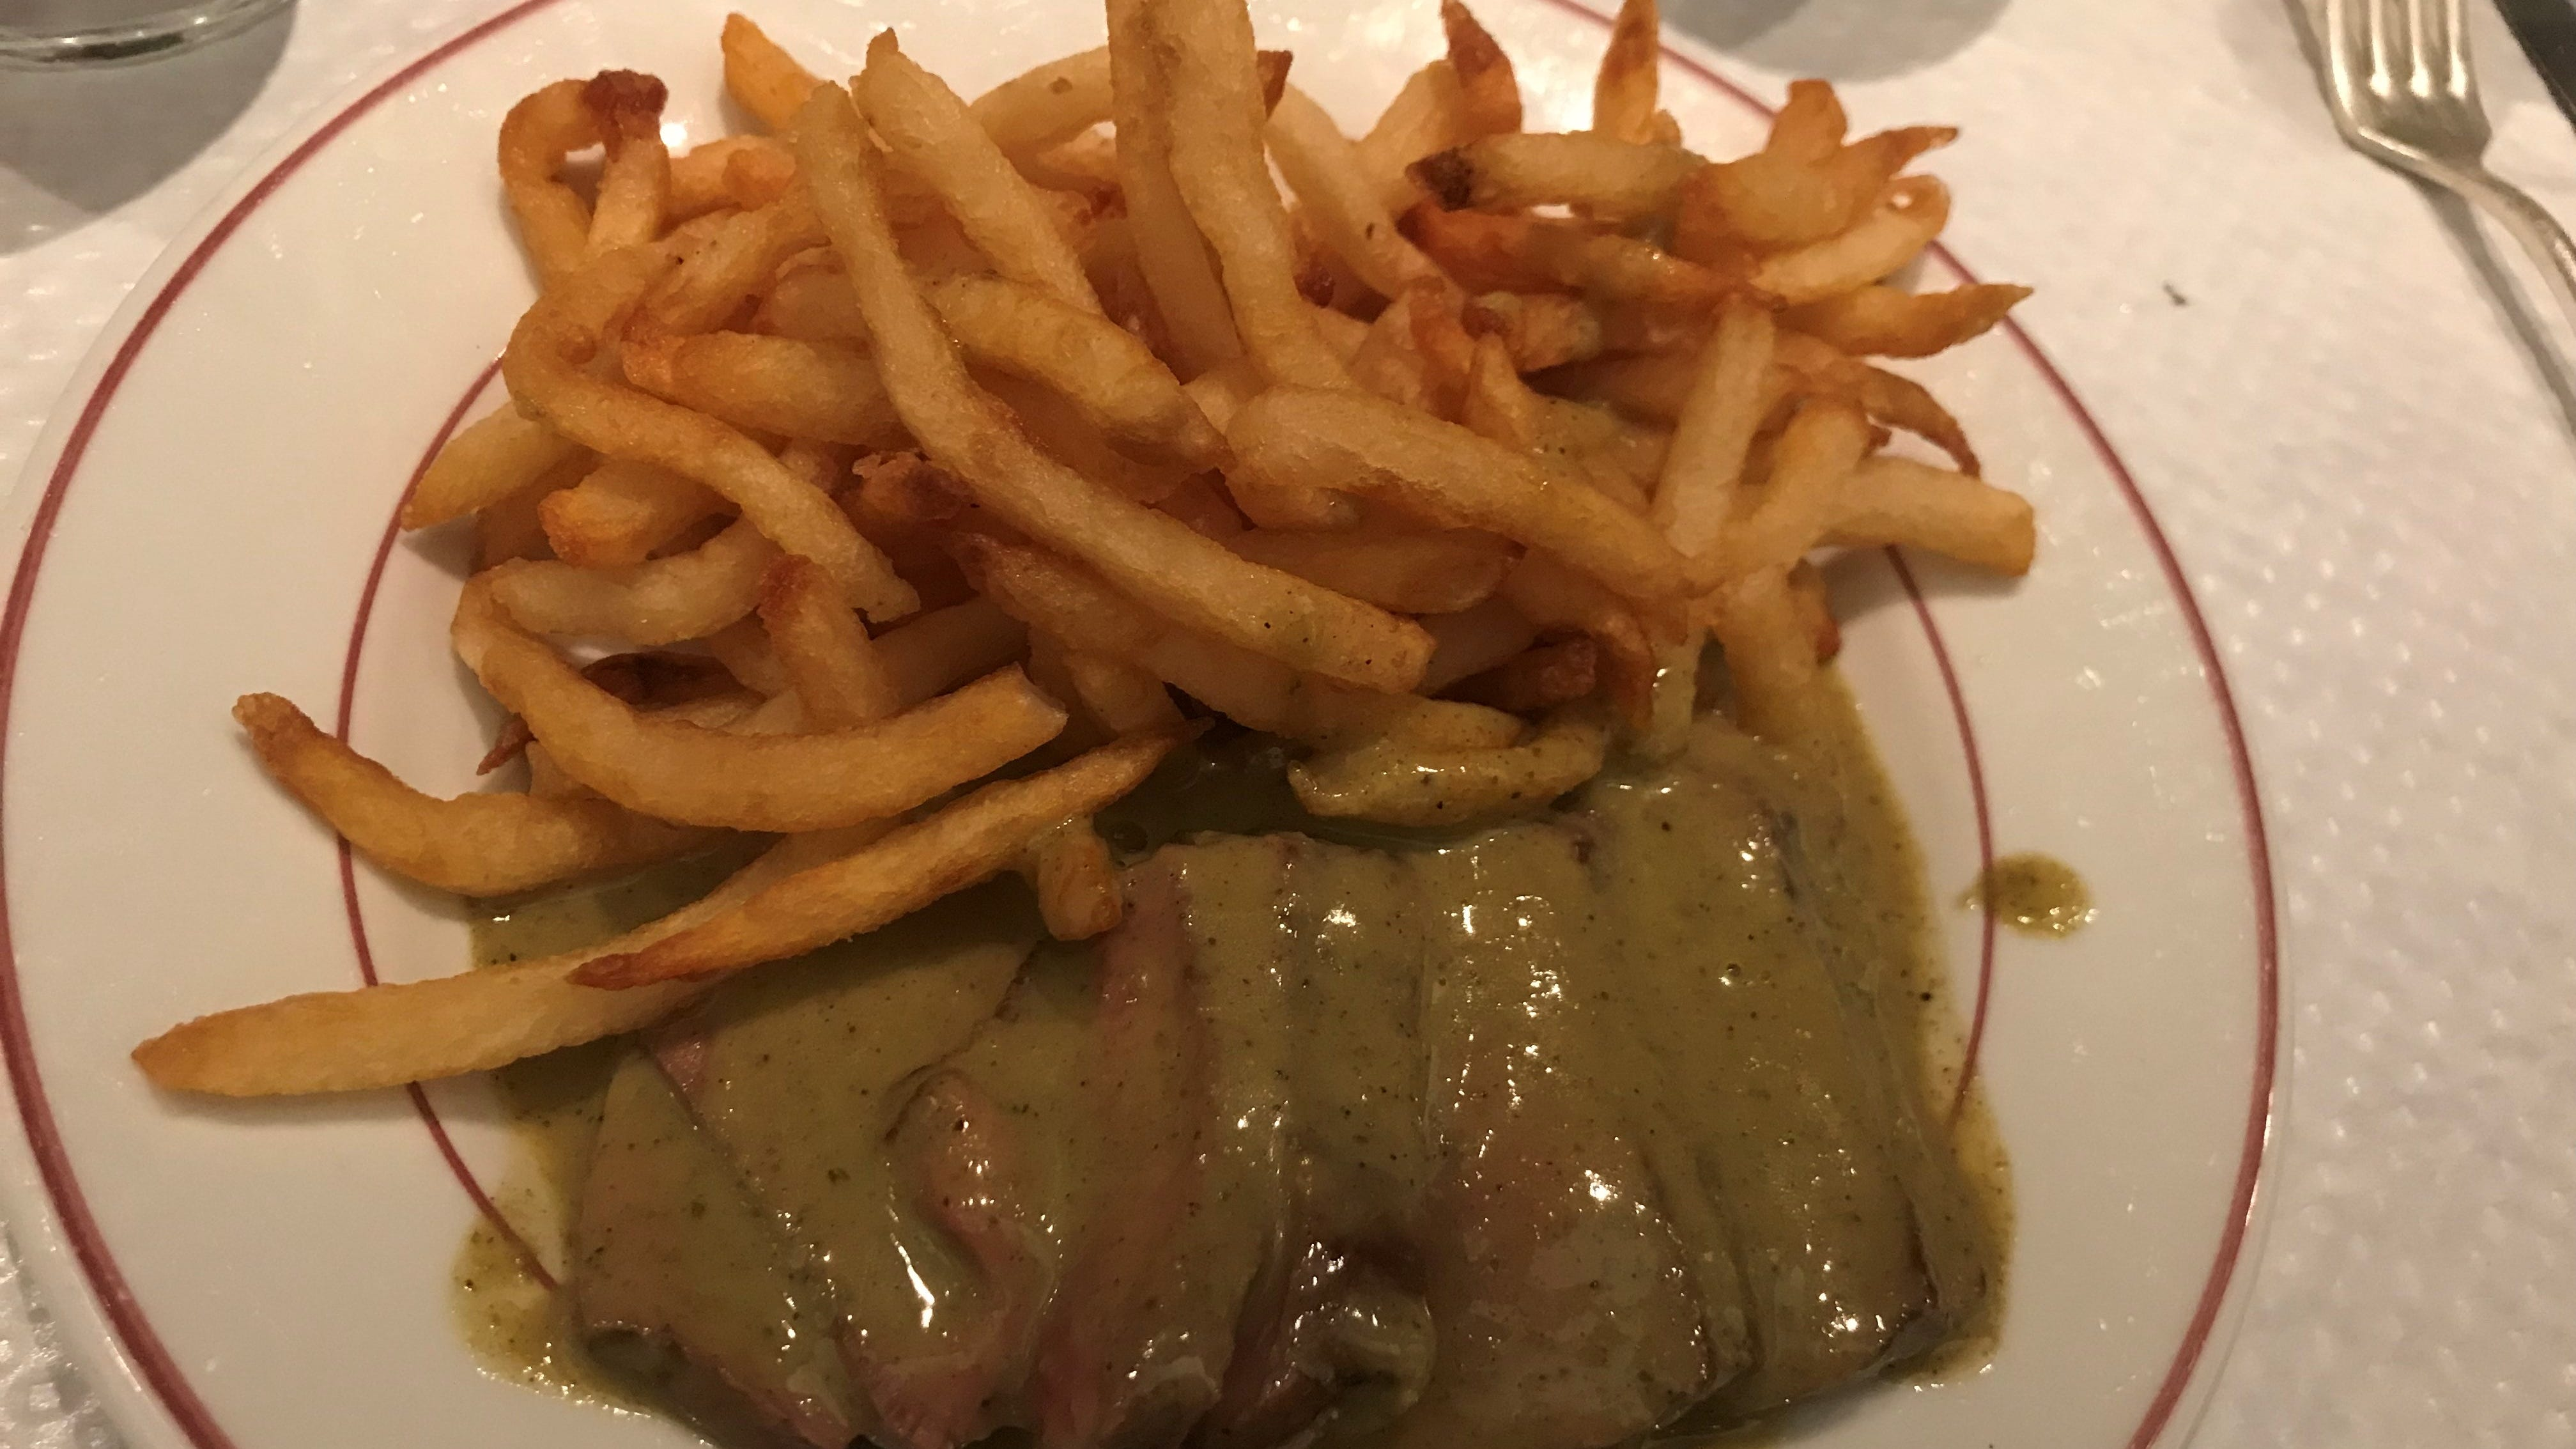 The main event – and only option - is steak frites, with seconds offered once you finish this plate.